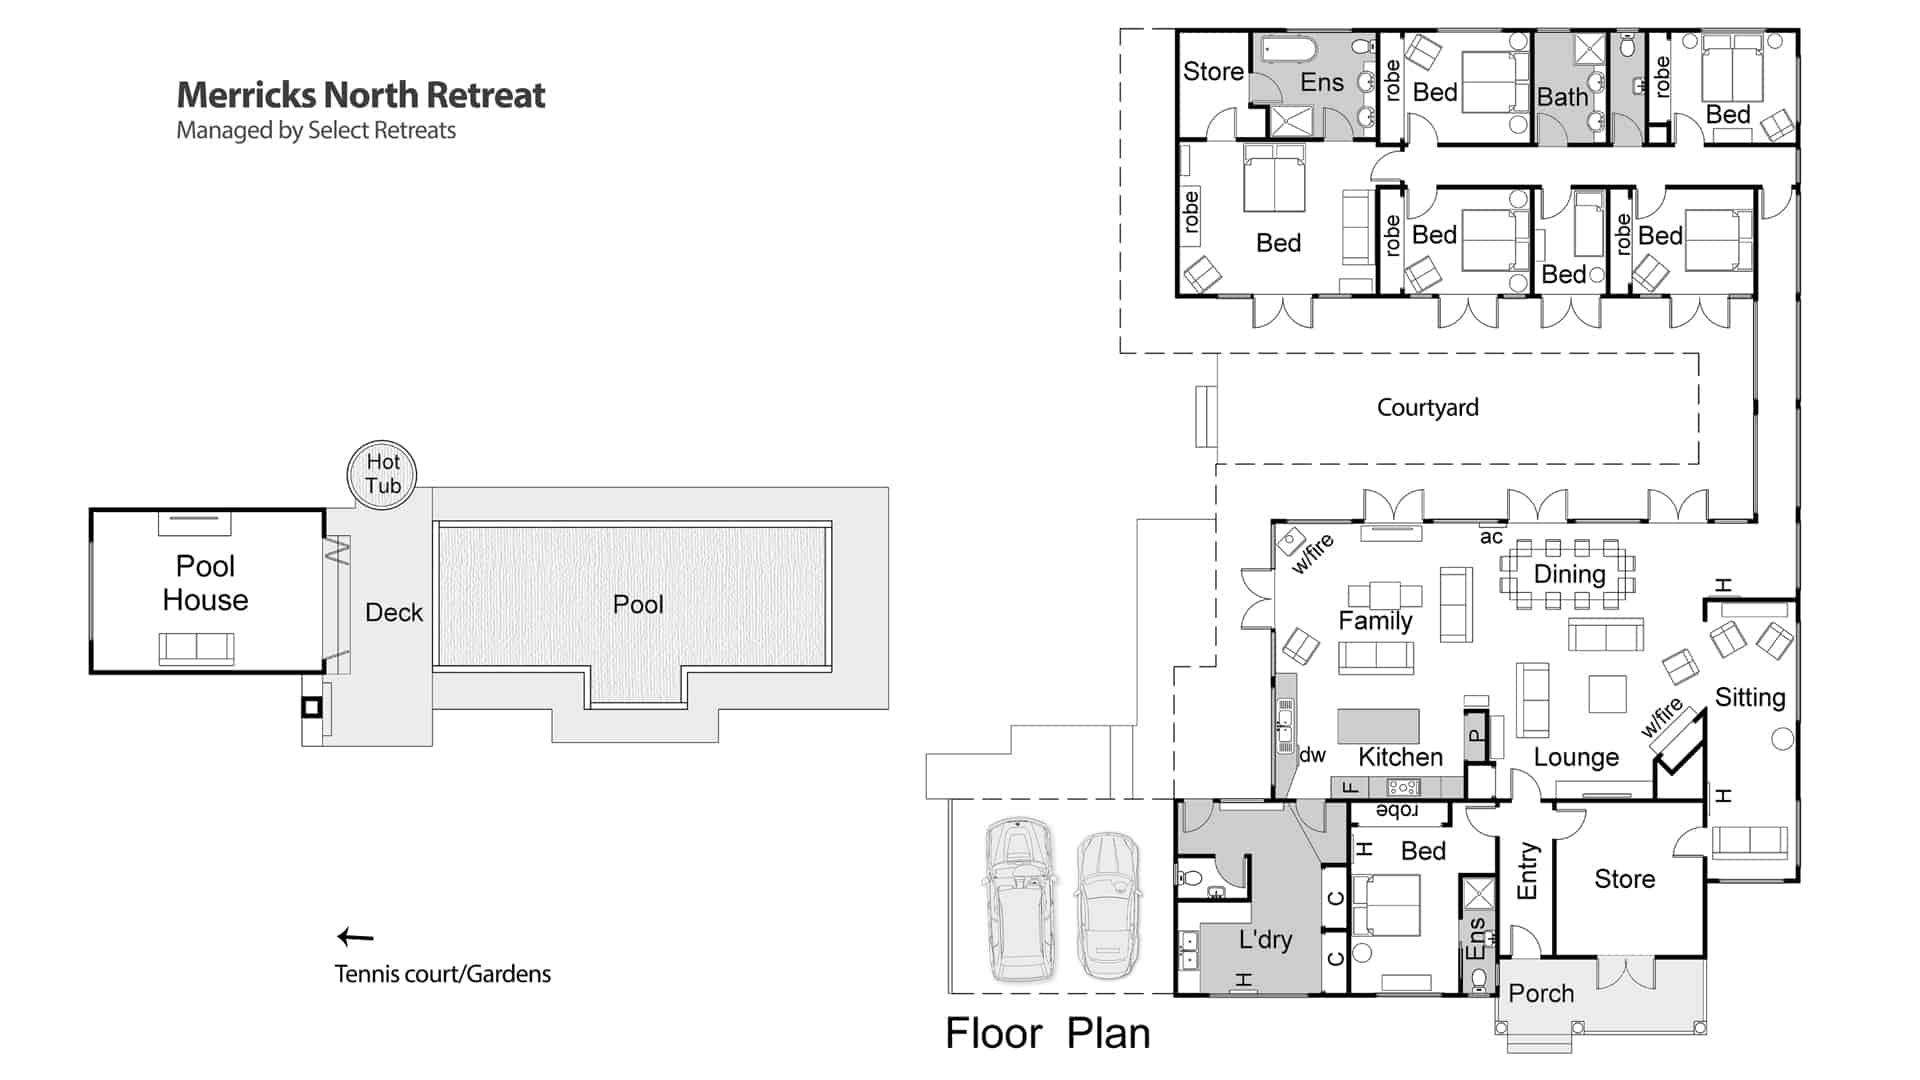 Merricks North Retreat Floor Plan